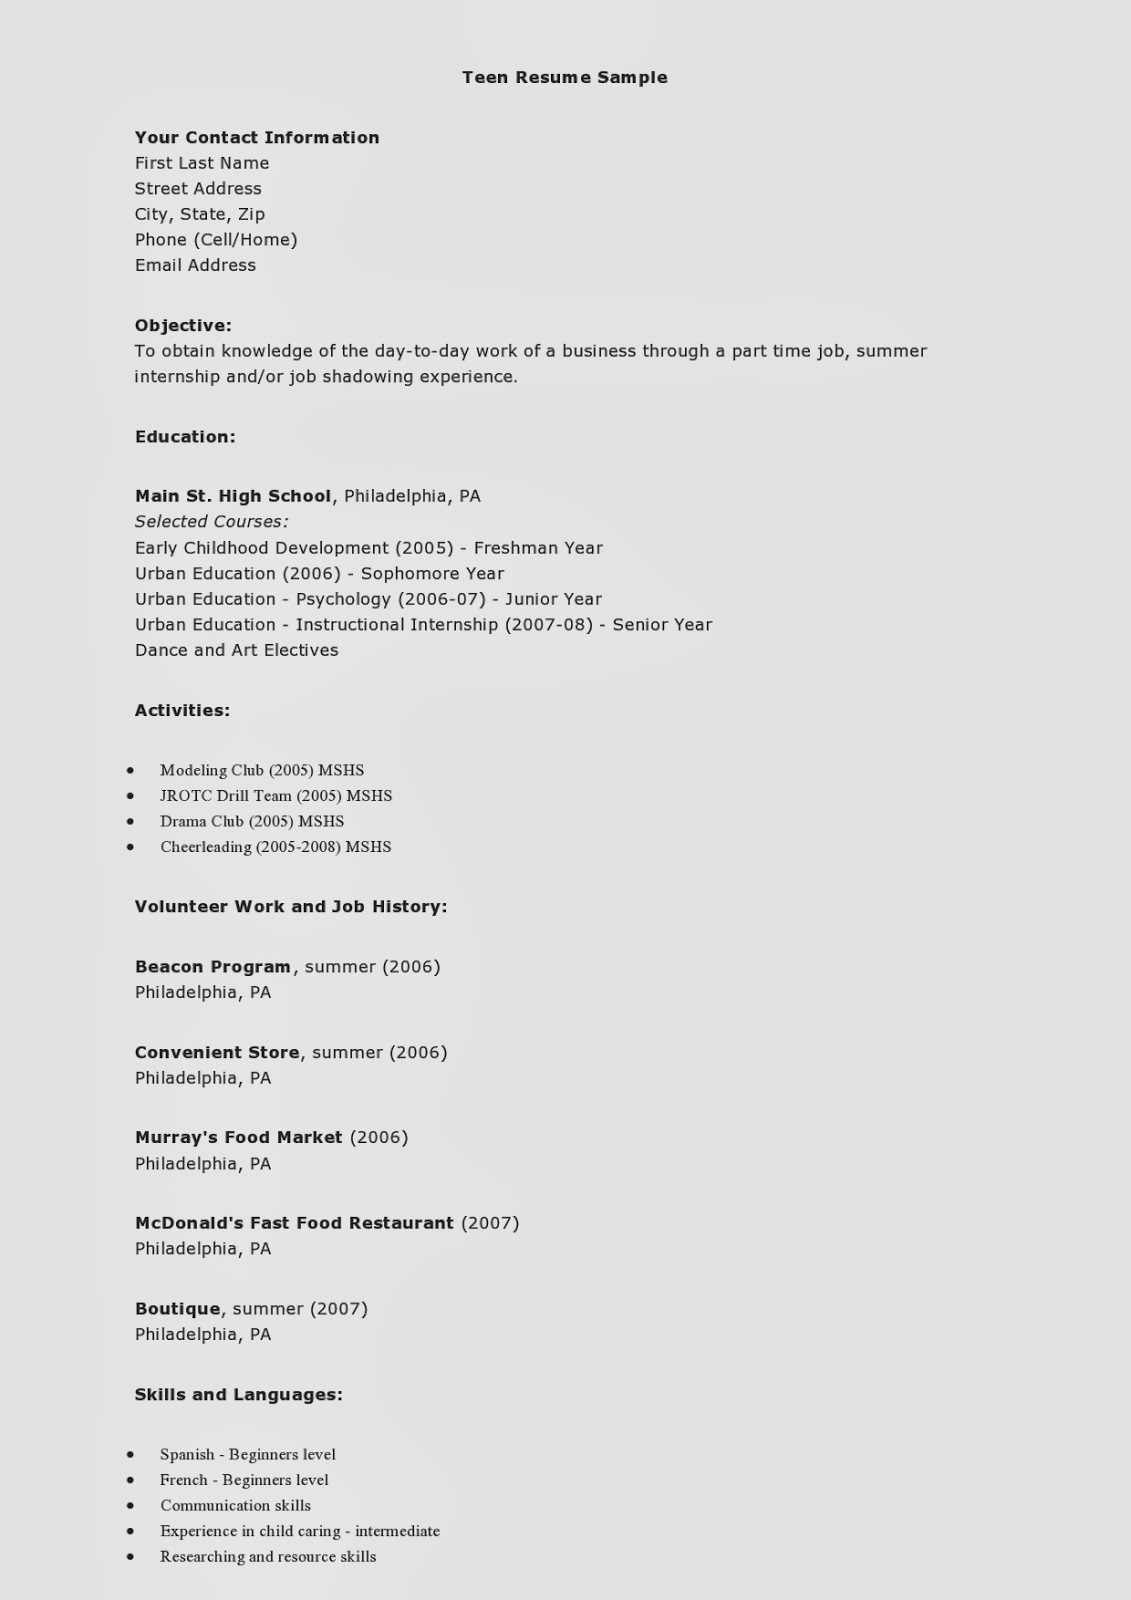 acting resume maker sample customer service resume acting resume maker how to make an acting resume that works for you job resumes